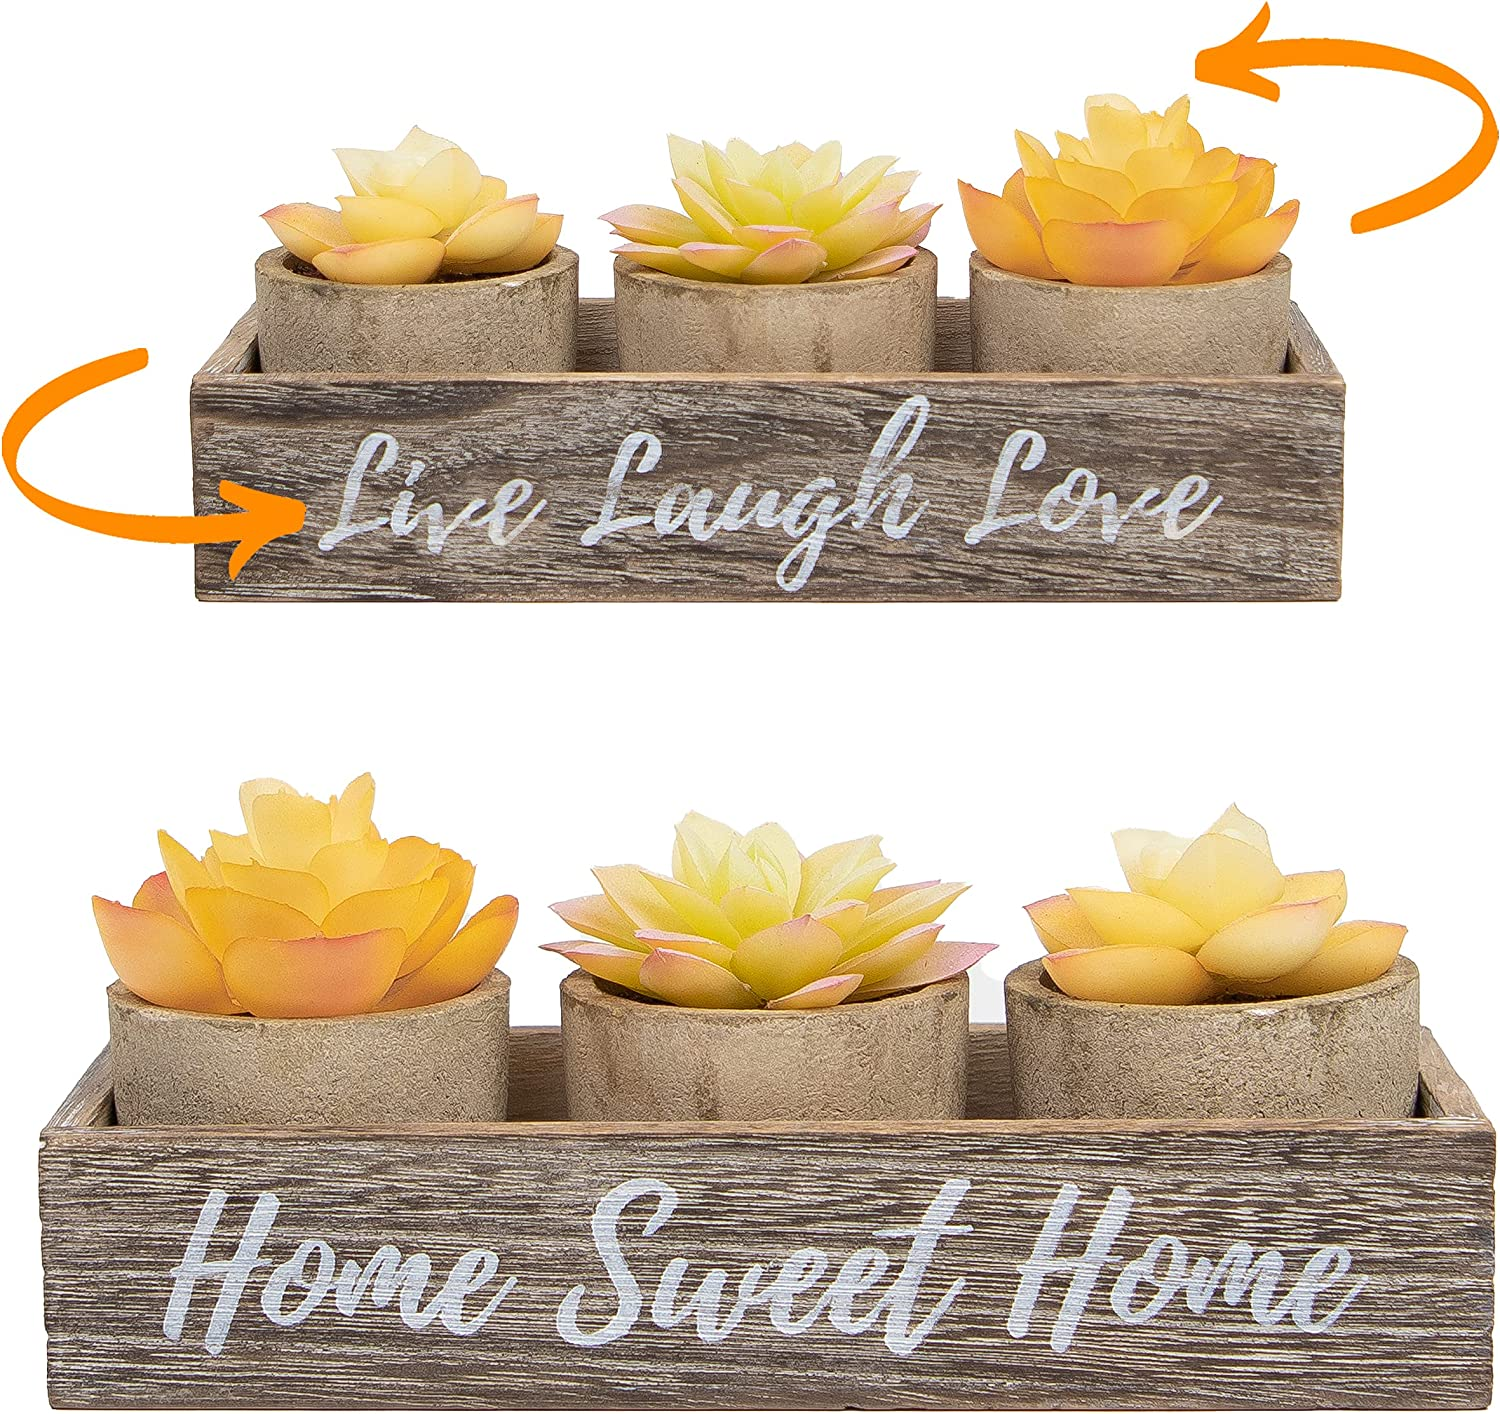 3 Artificial Succulent Plants with Pots with Rustic Planter Box – Home Sweet Home & Live Laugh Love Realistic Greenery Mini Faux Plant for Home Decor Office Table Bathroom Kitchen Dorm - Yellow